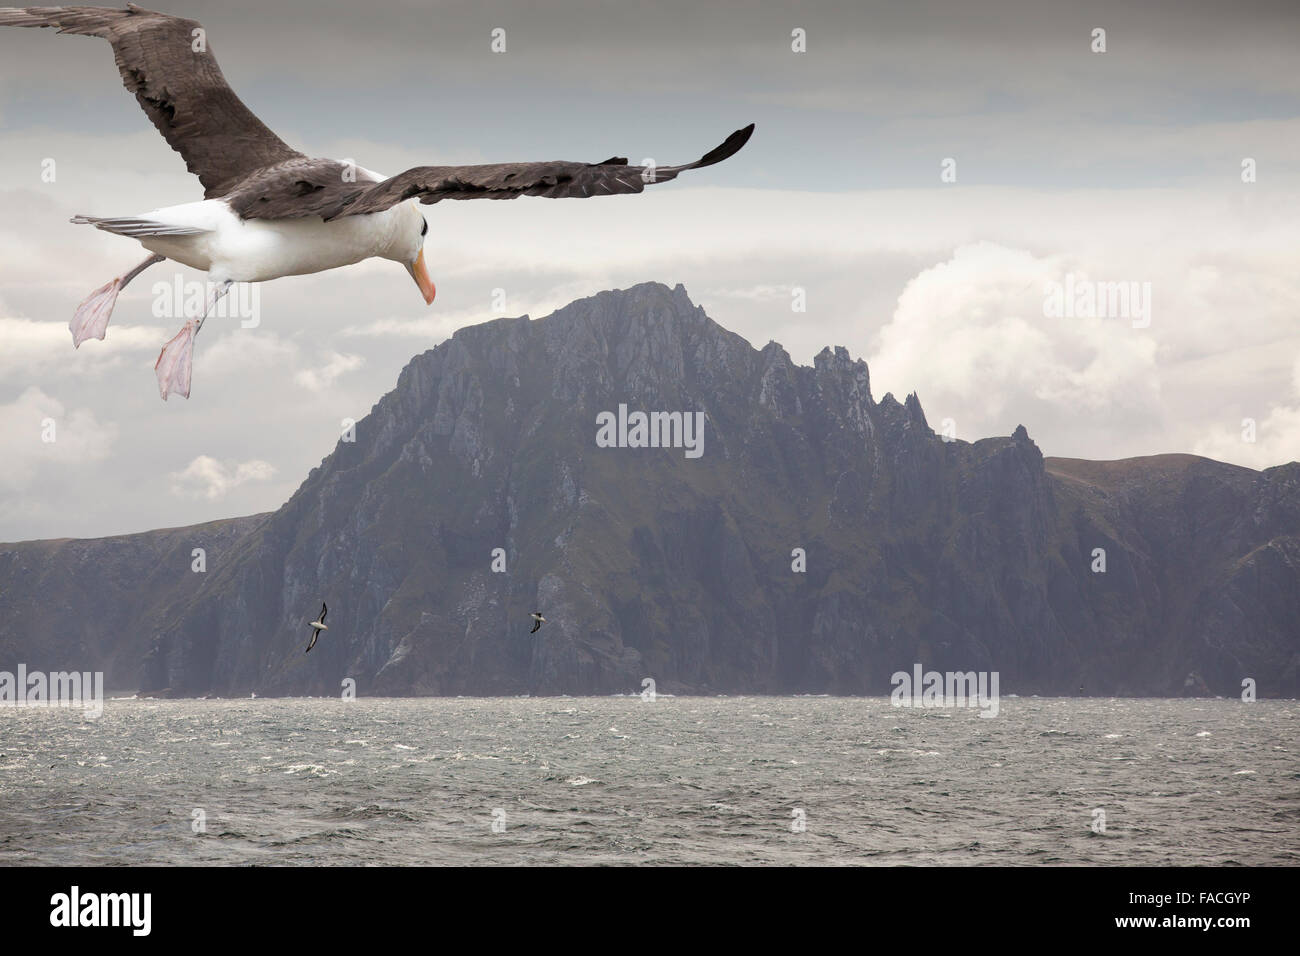 Cape Horn at the southern tip of South America, with Black Browed Albatross flying by. - Stock Image